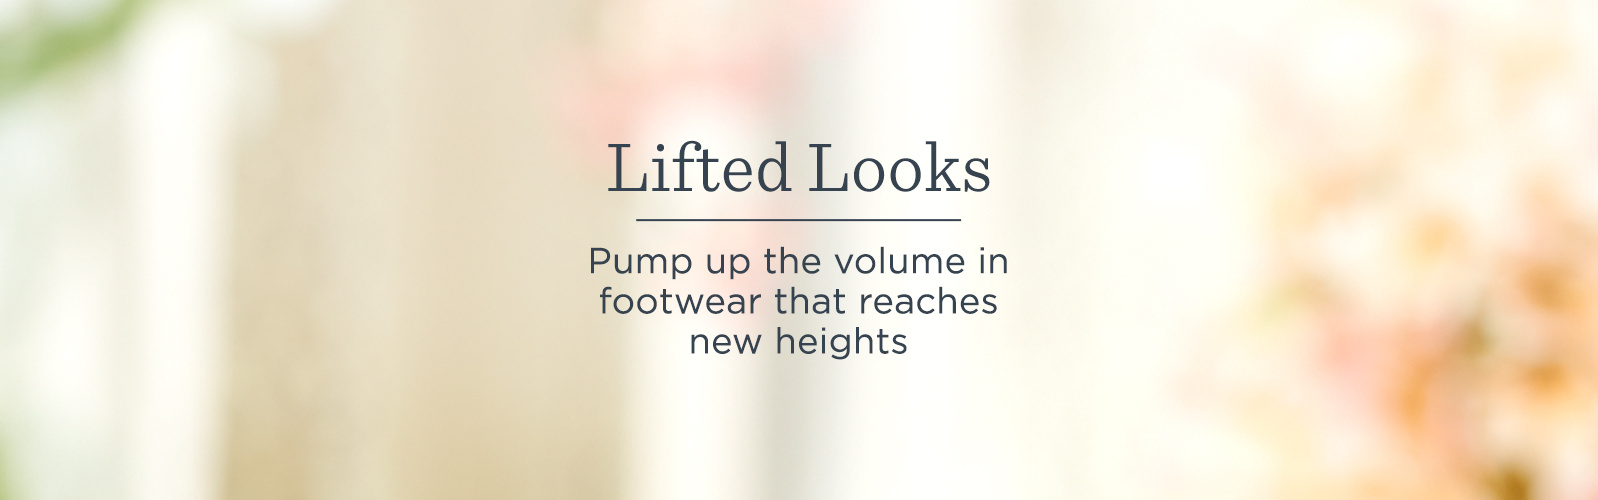 Lifted Looks. Pump up the volume in footwear  that reaches new heights.